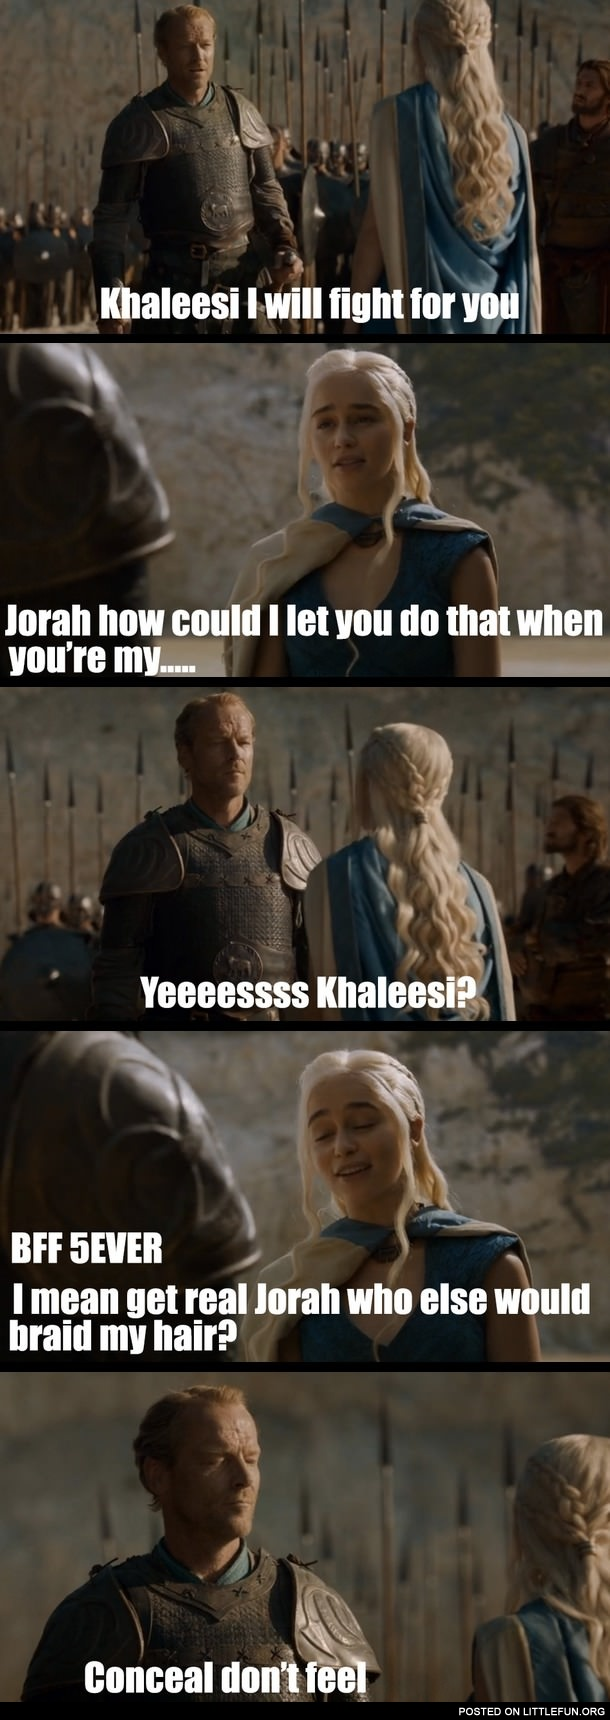 Friend zone level: Game of Thrones